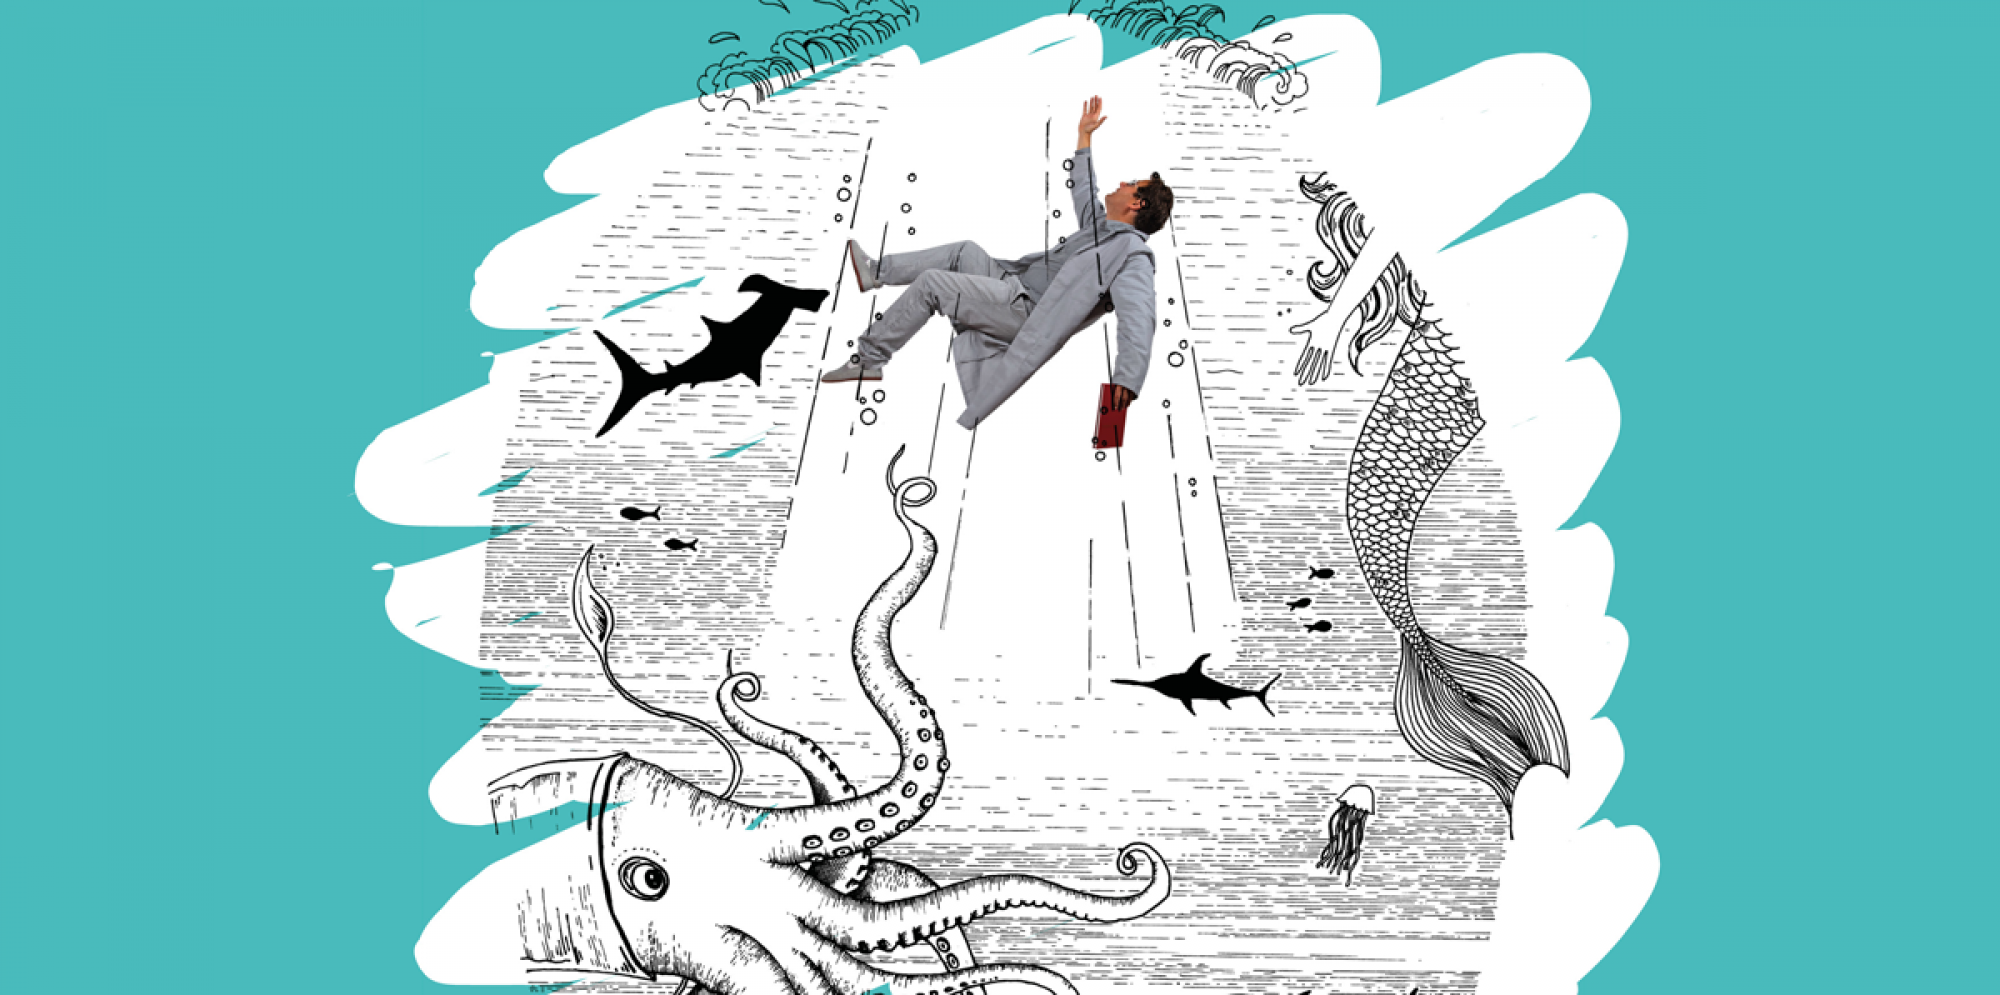 The Day I Fell Into A Book: an illustration of man falling underwater, greeted by sharks, mermaids and a kraken